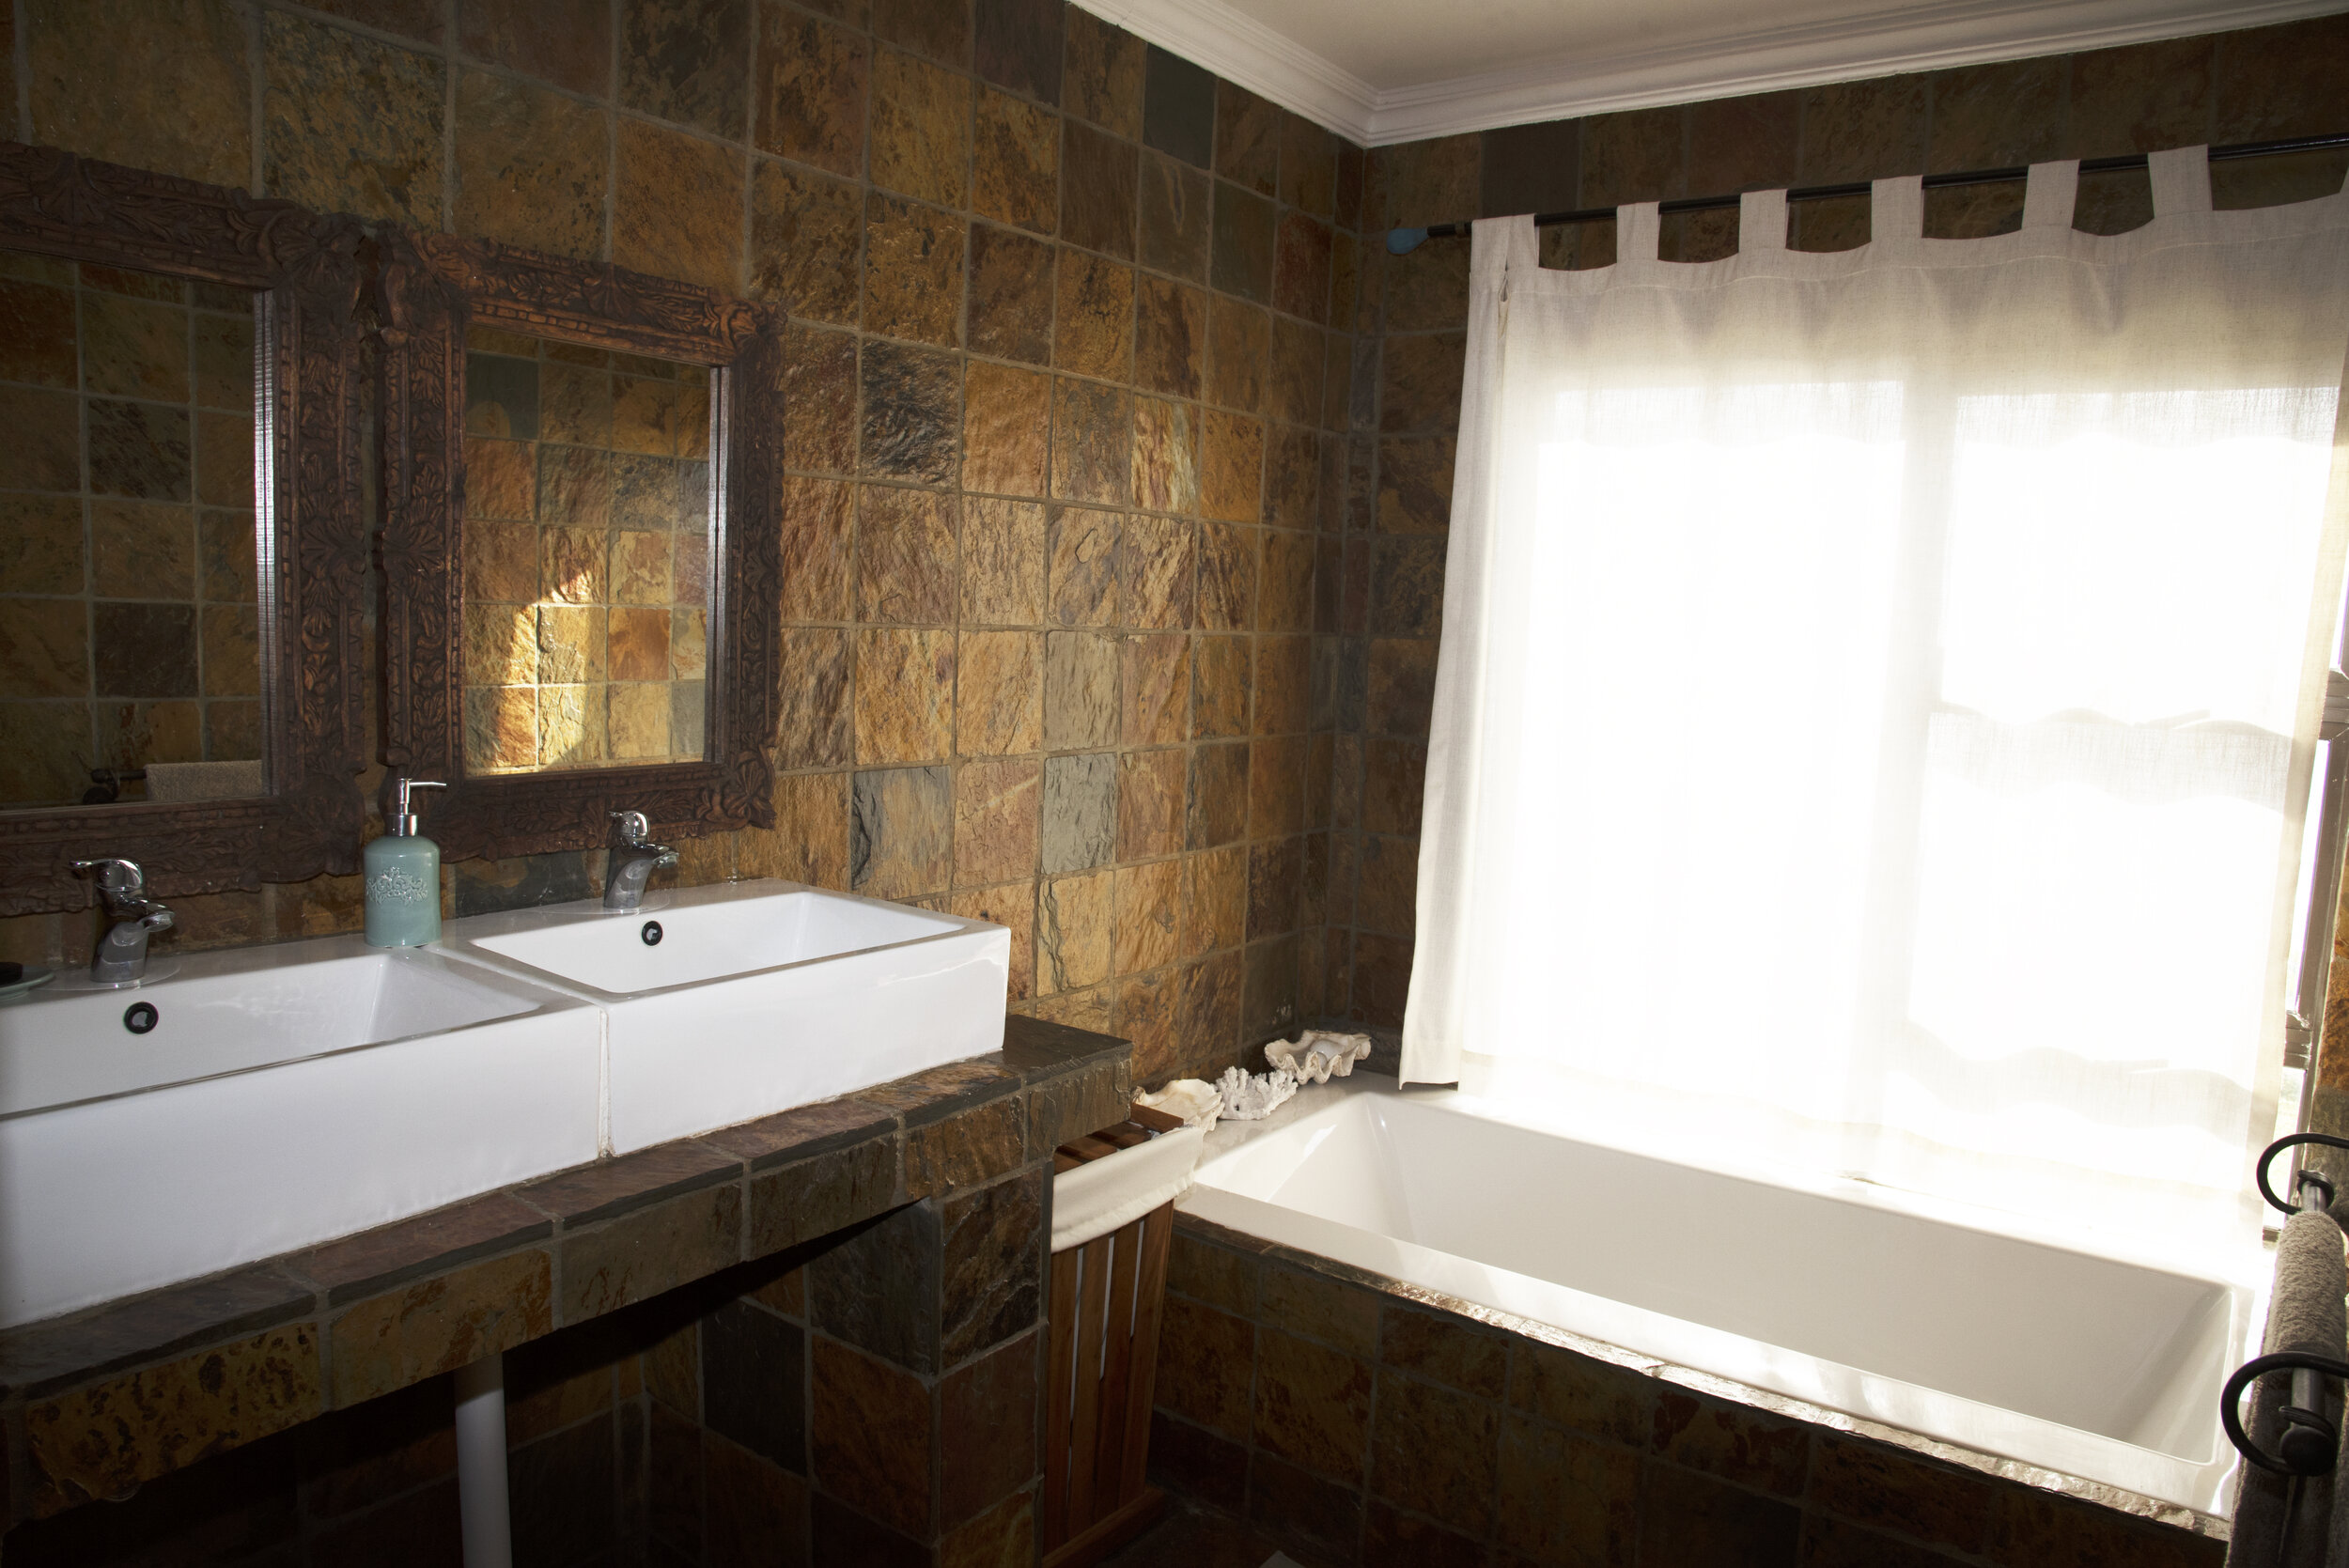 Bathrooms - The en-suite bathrooms have a shower or a bath-tub to relax in. His and Her's sinks accompanied by the exquisite vanity mirrors. The bathrooms includes bath towels set, with your basic toiletries.